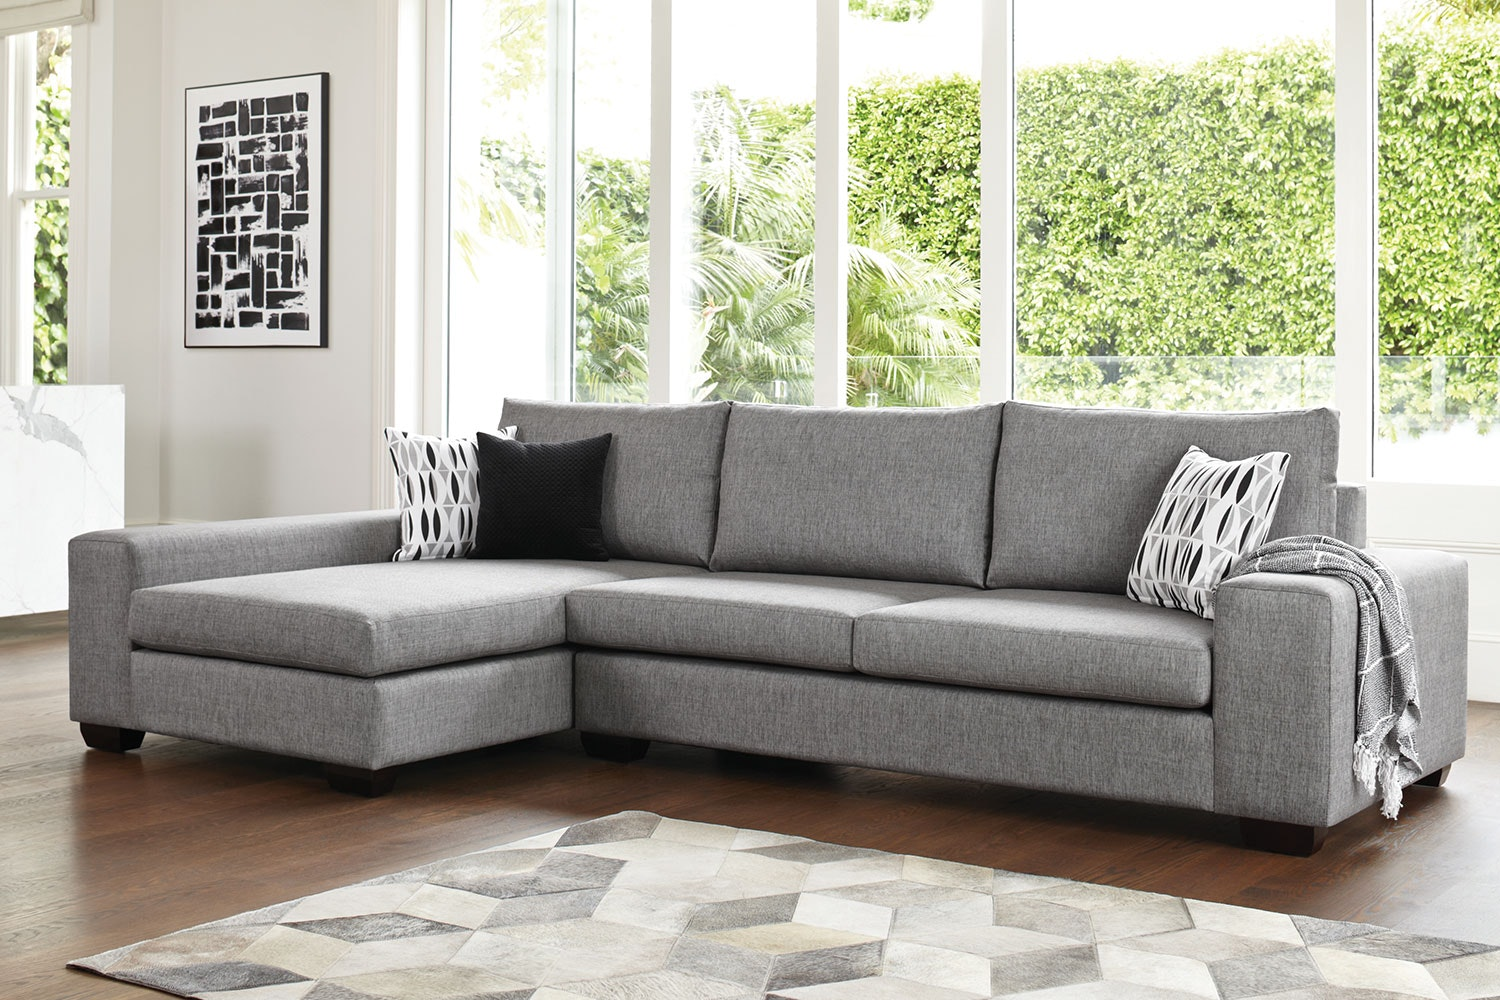 Lounge Suites Couch Ottoman Sofa Packages Harvey Norman New  ~ Where To Buy Sofa Fabric